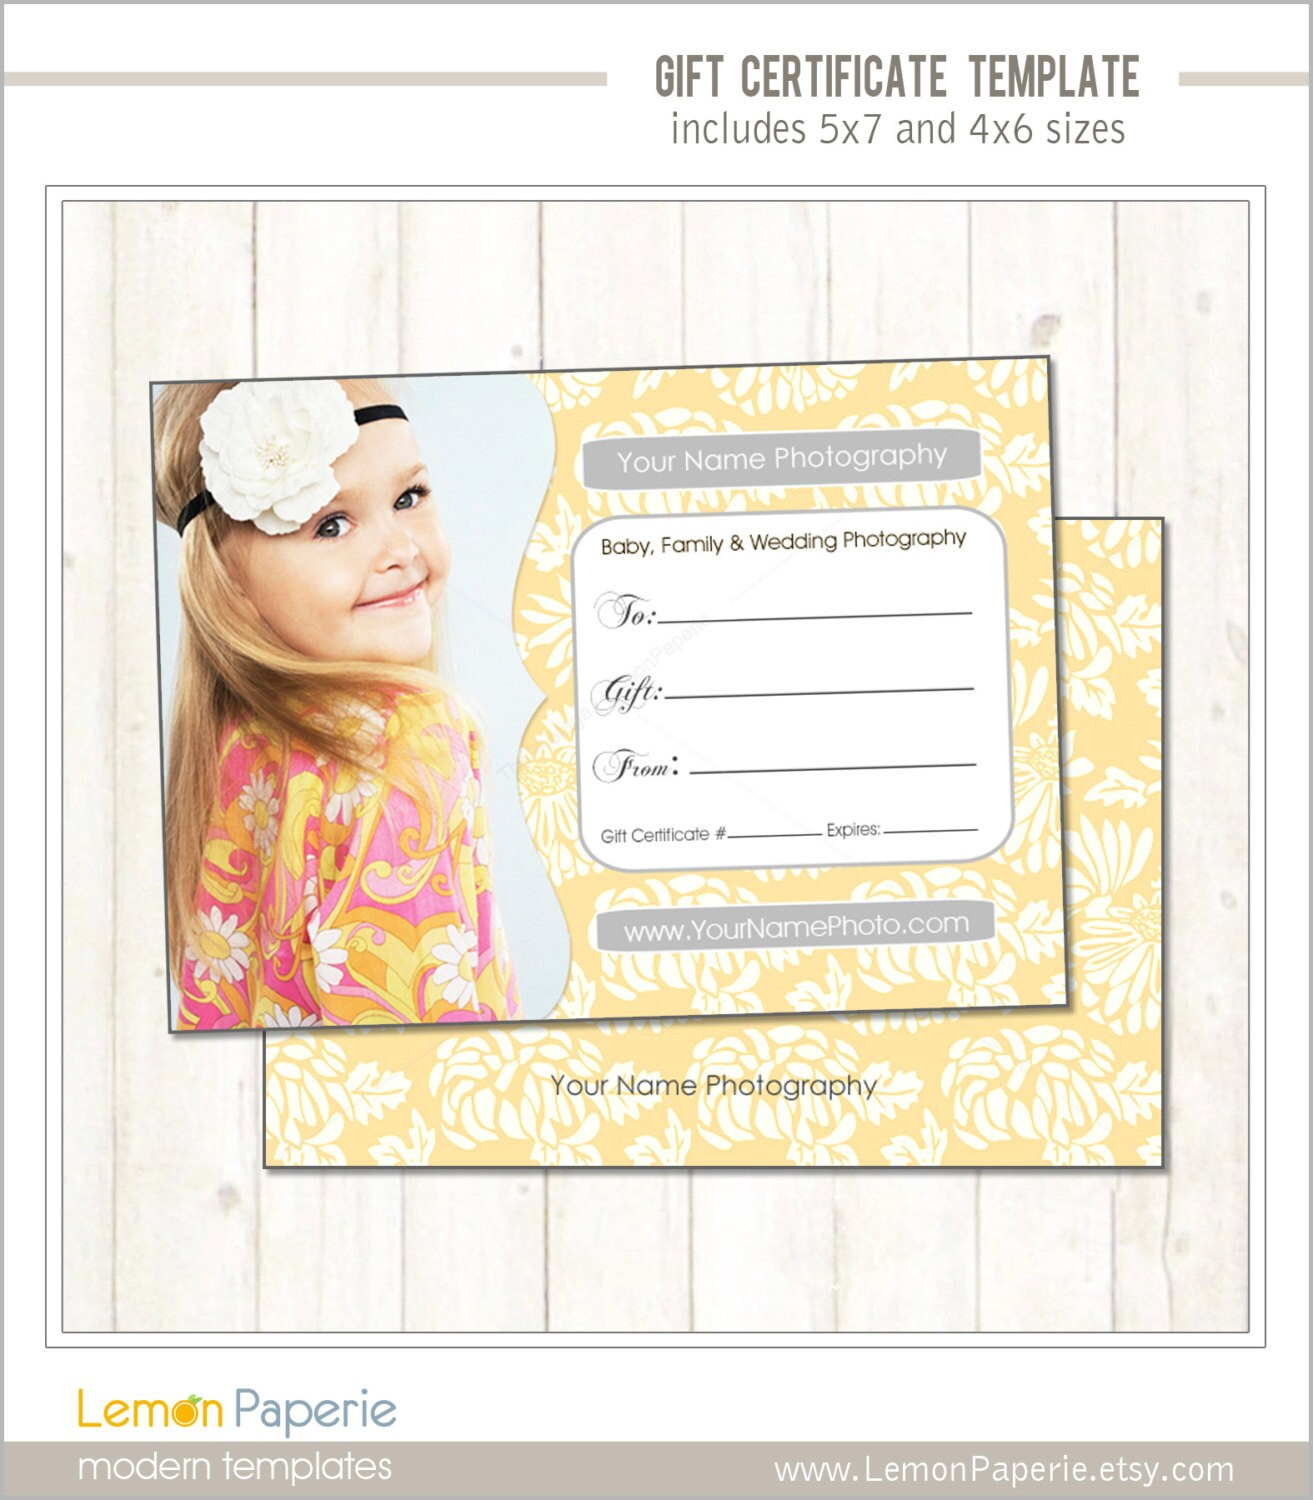 5x7 and 4x6 gift certificate template fresh blossoms psd zoom 1betcityfo Choice Image